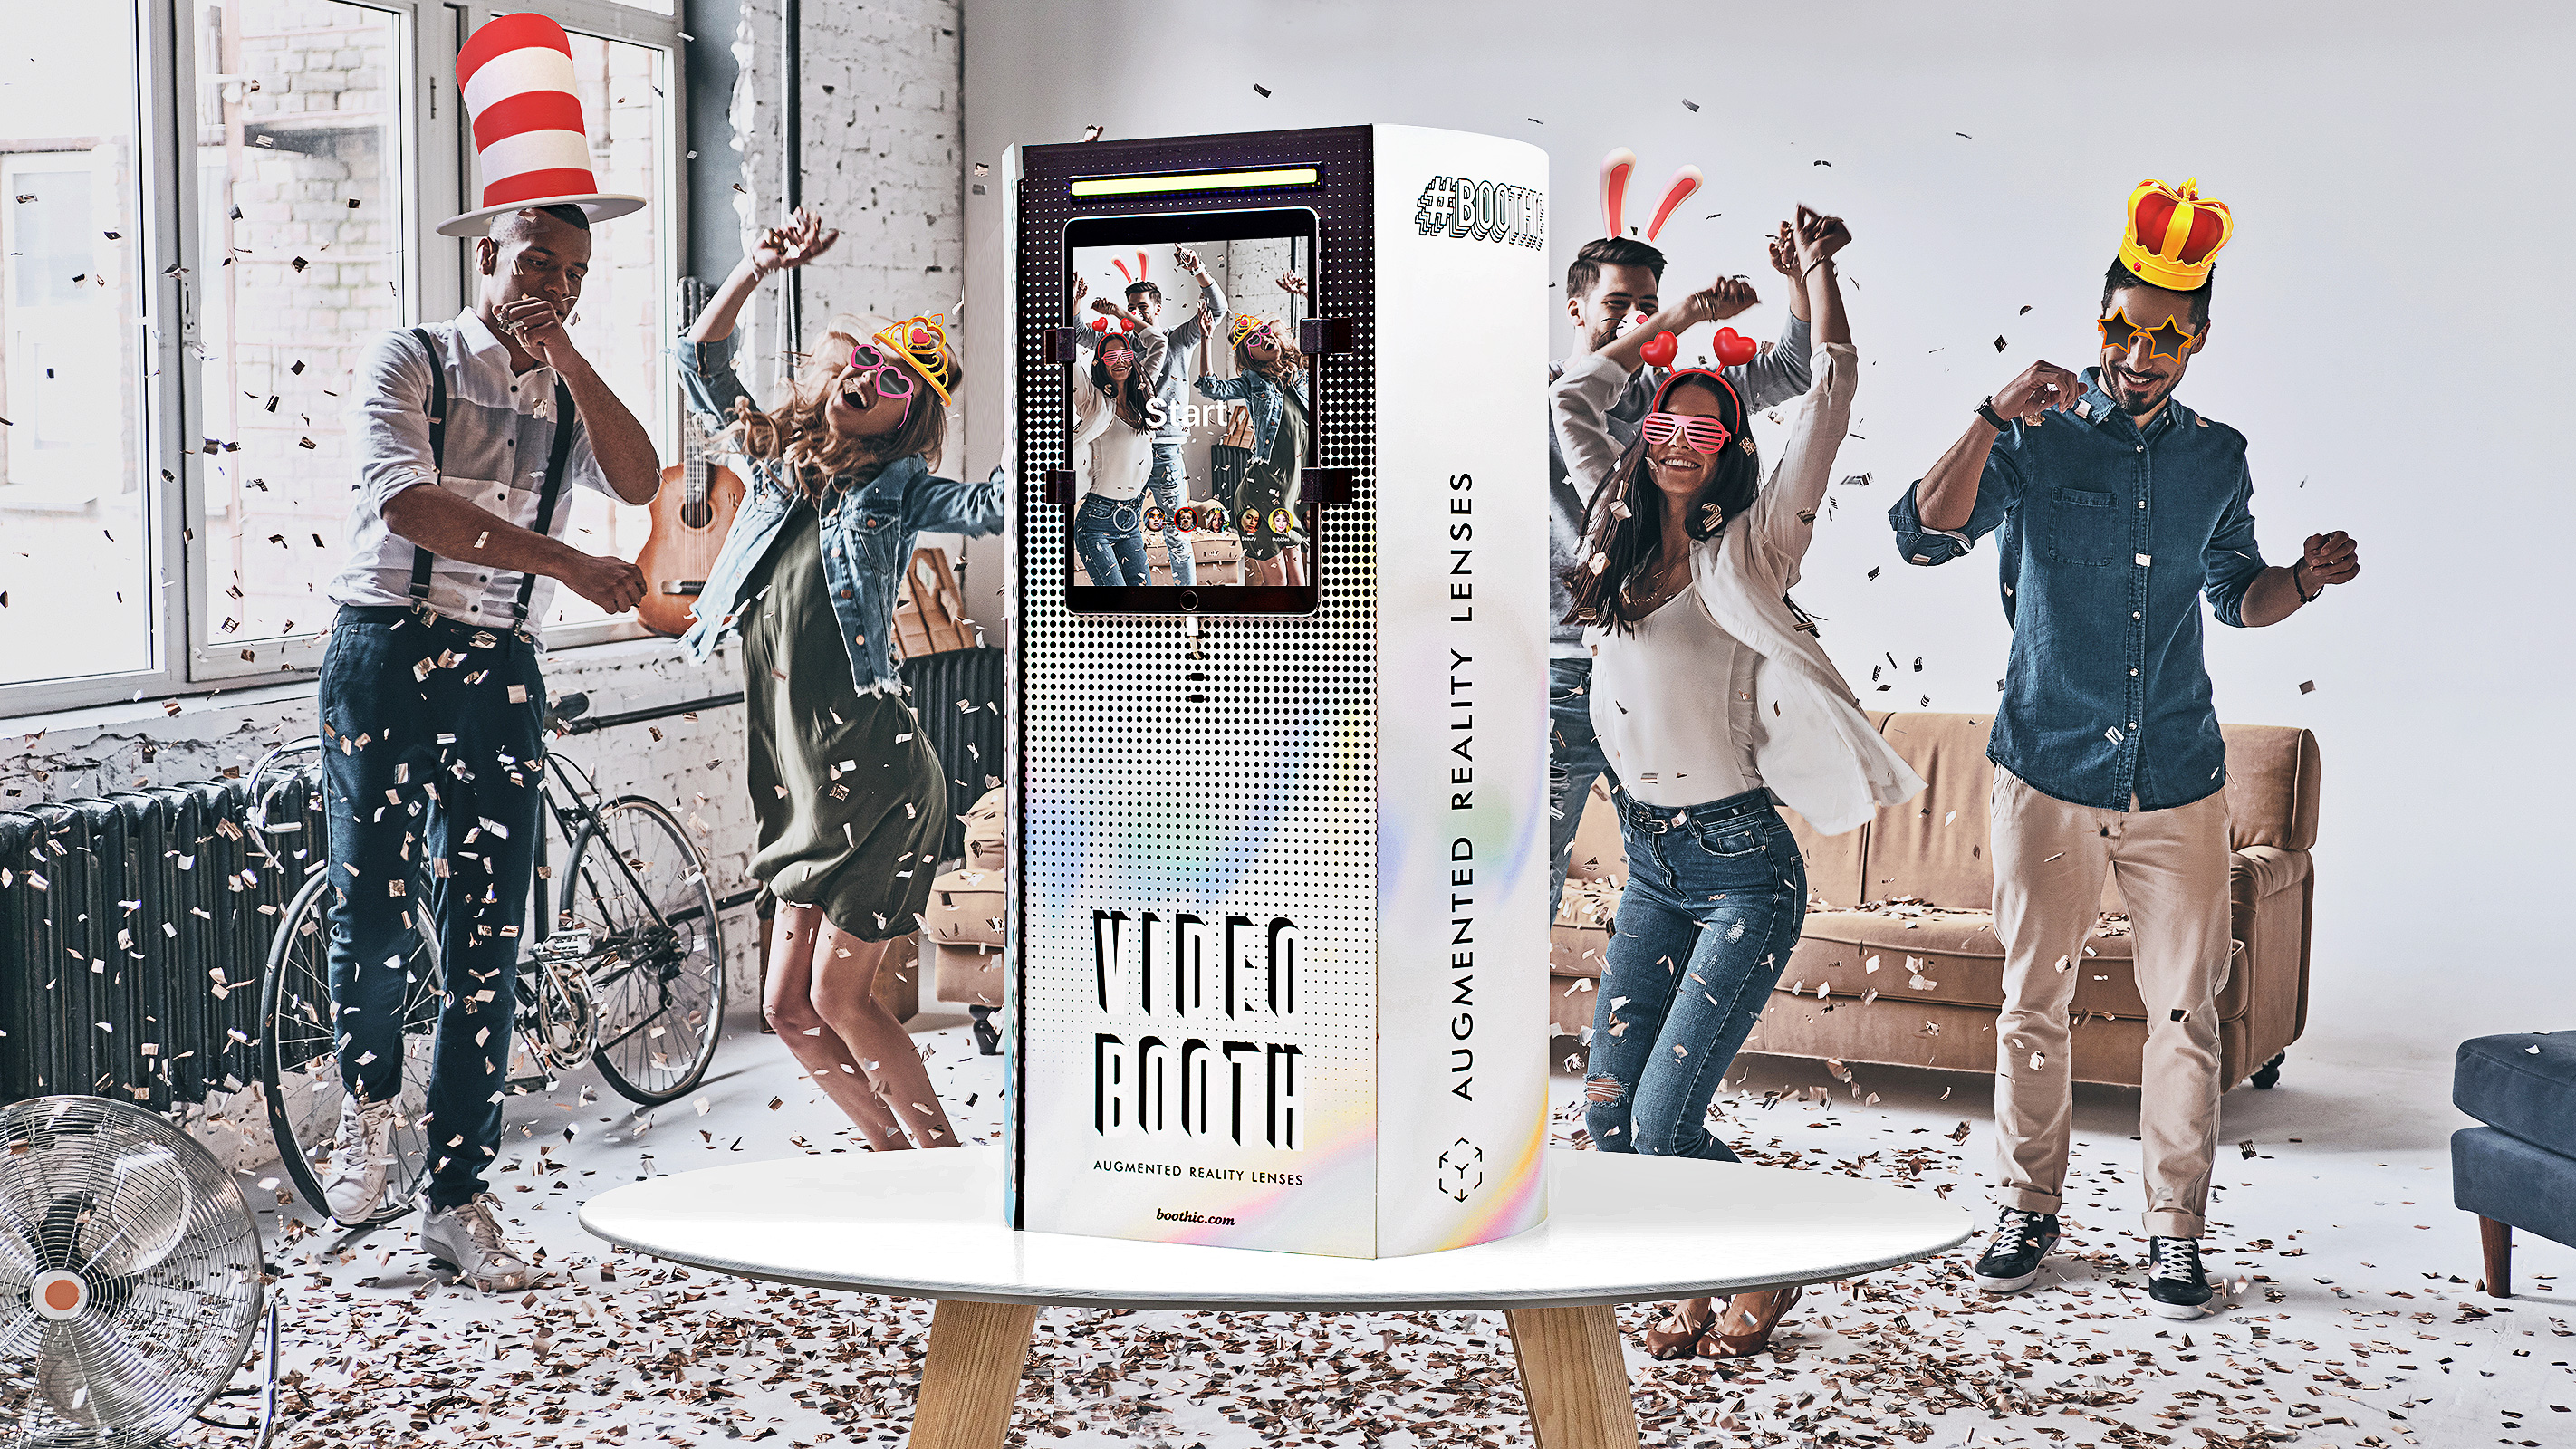 Boothic: Meet a smarter Photo Booth